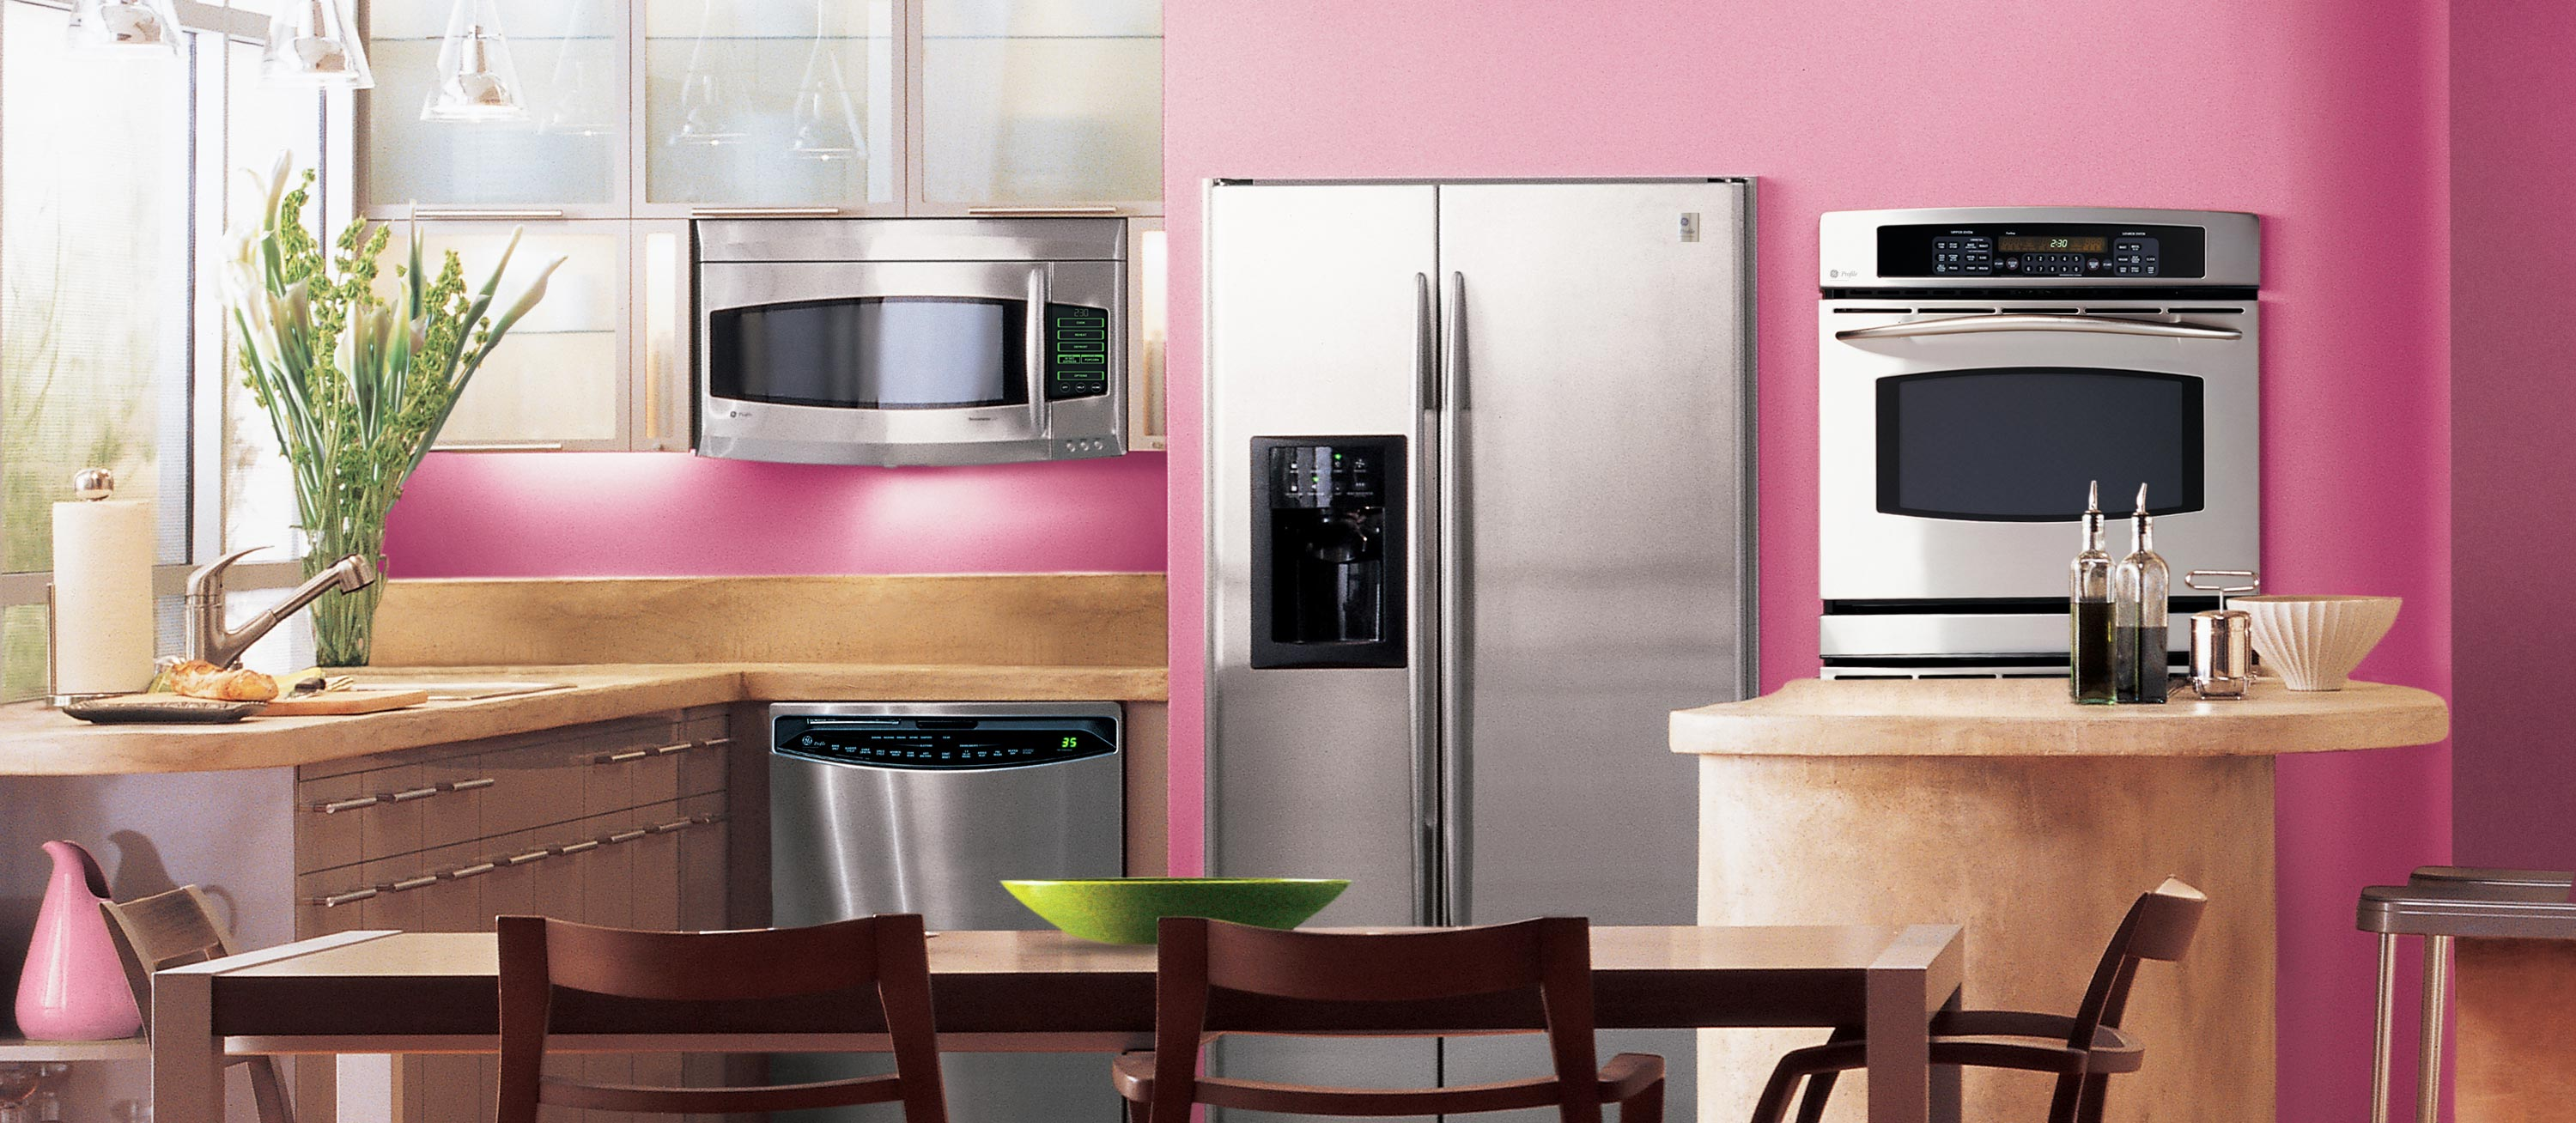 Tips for making your Kitchen Appliances last as long as Possible